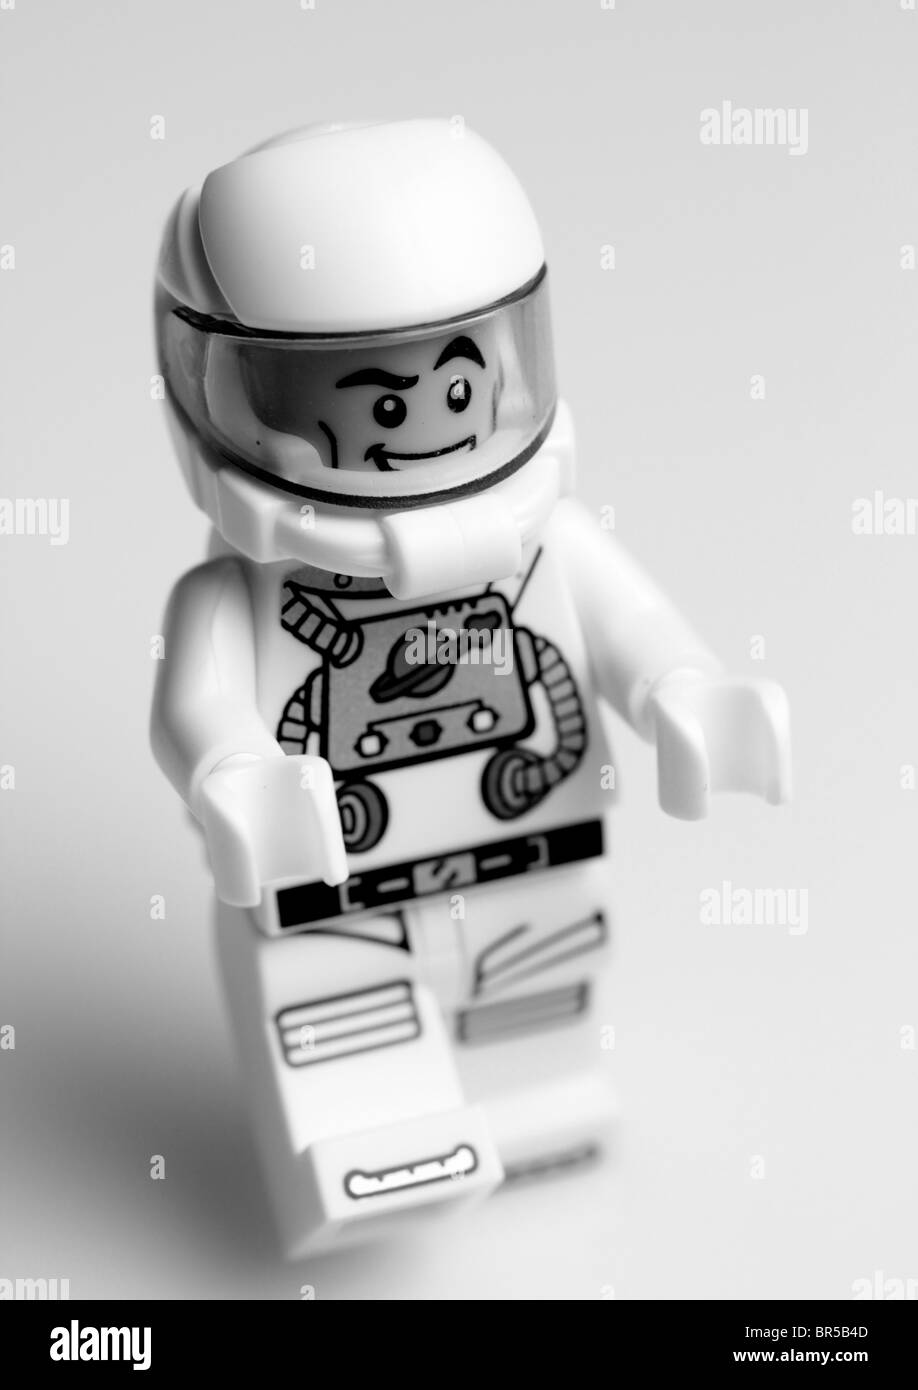 One small step for a mini figure, one giant leap for Lego. - Stock Image